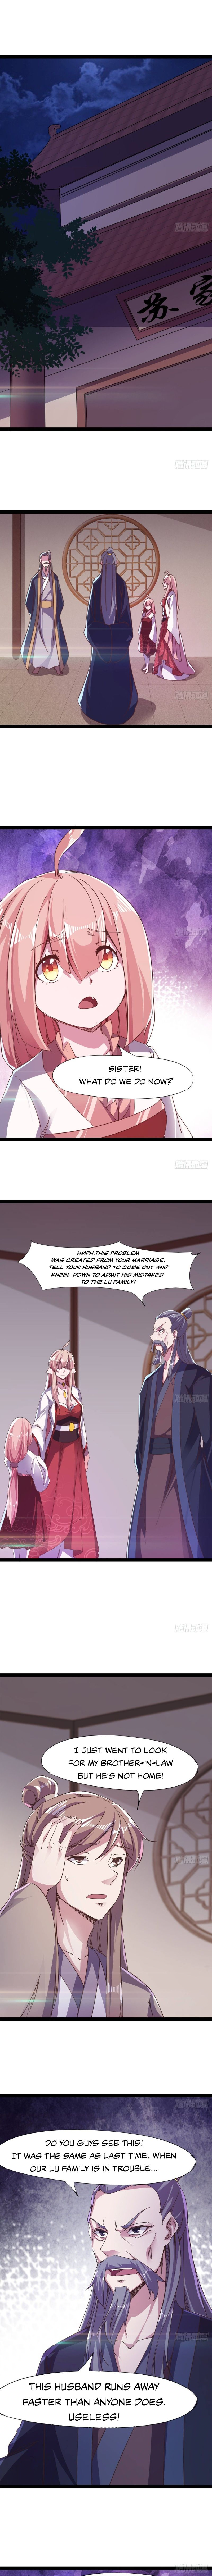 Path of the Sword - chapter 37 - #2